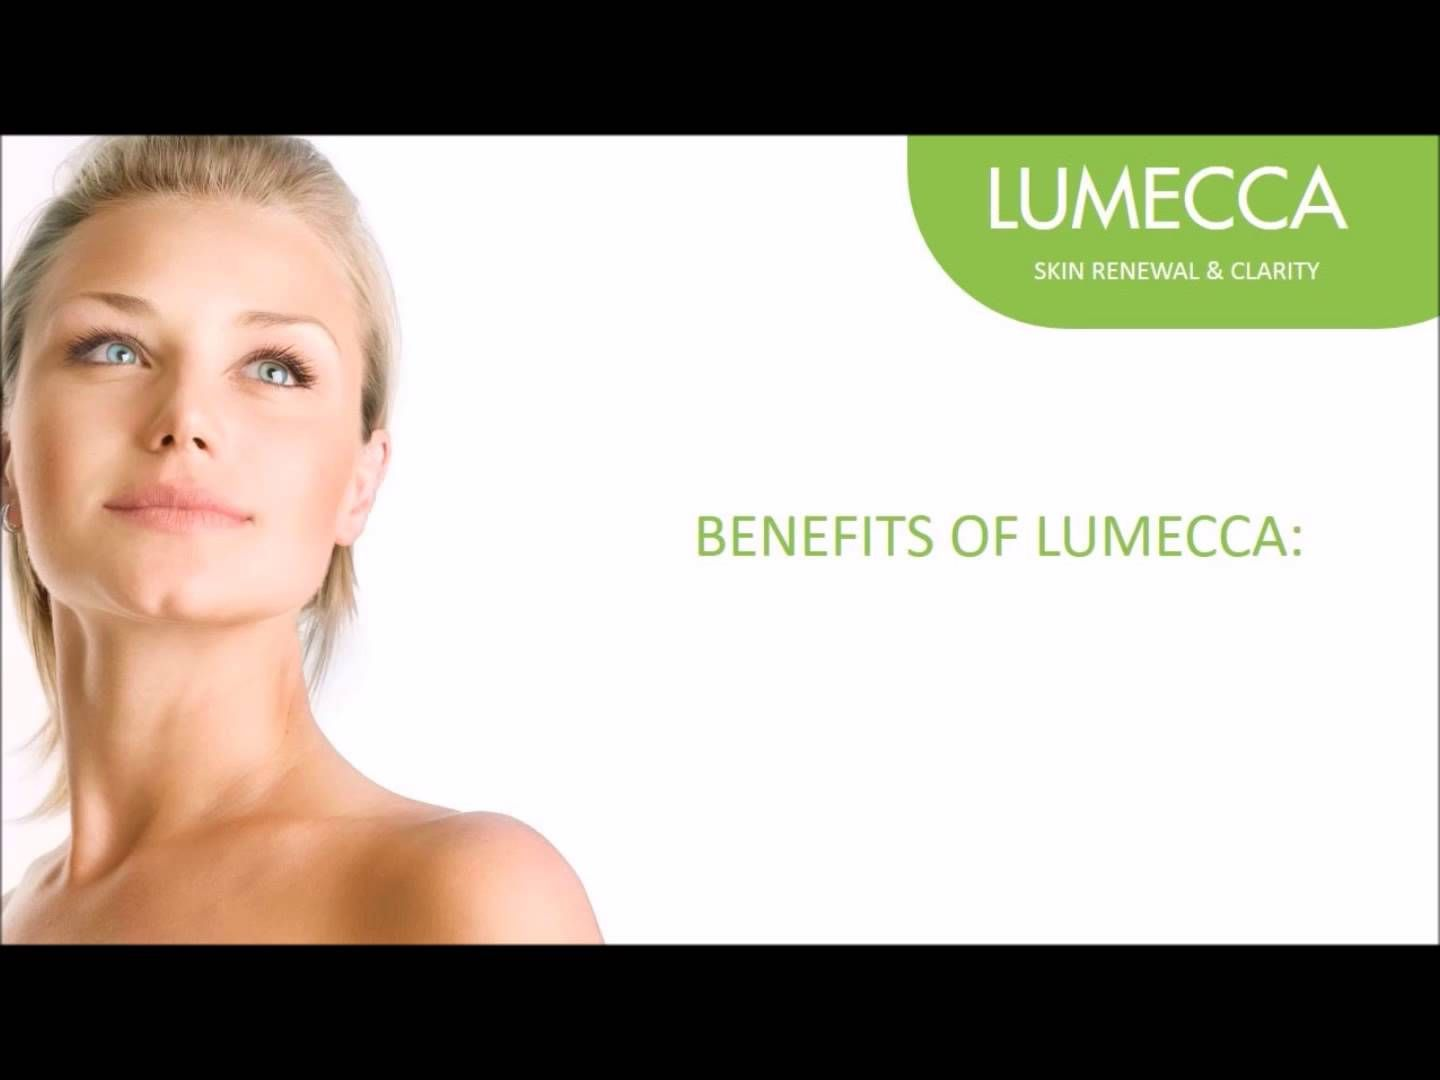 Lumecca Is The Most Powerful Intense Pulsed Light Ipl To